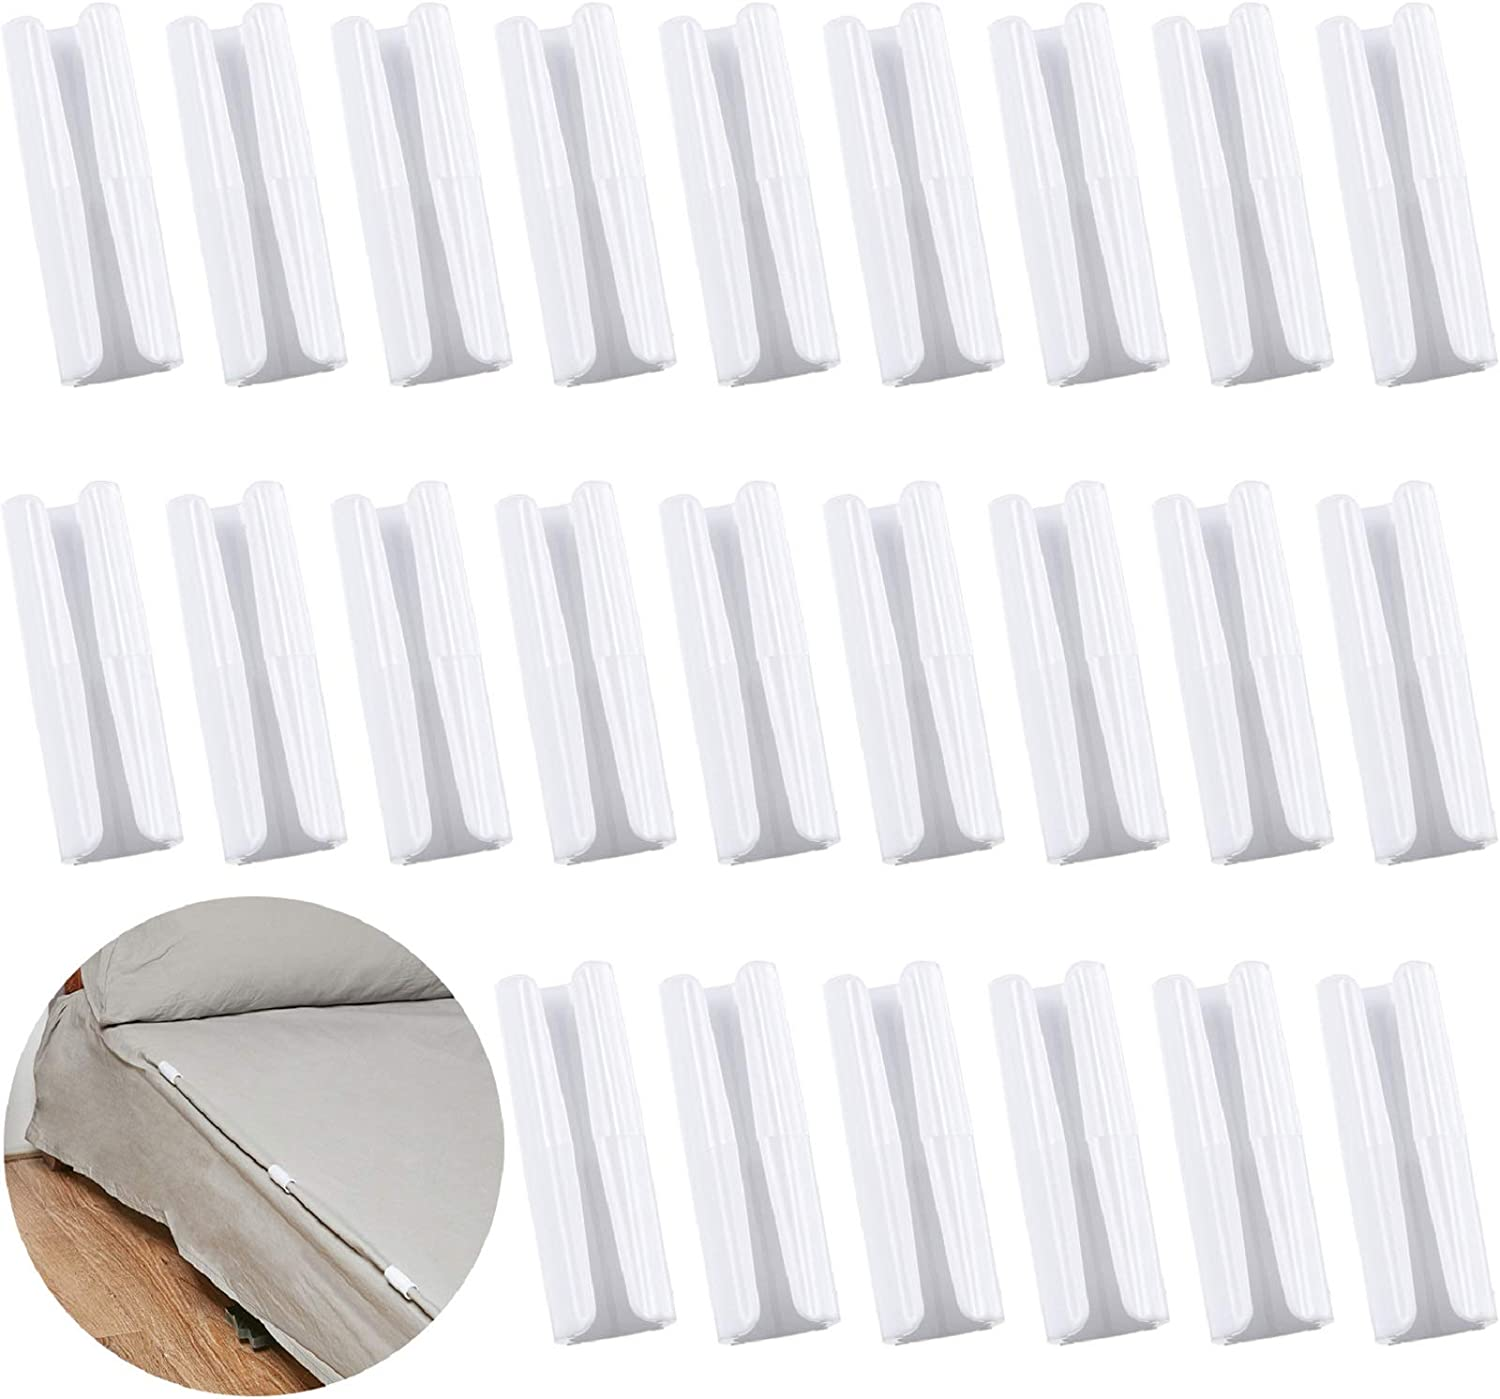 24 Pieces Bed Max 84% OFF Sheet Max 69% OFF Mattress Fasteners Fastene Grippers